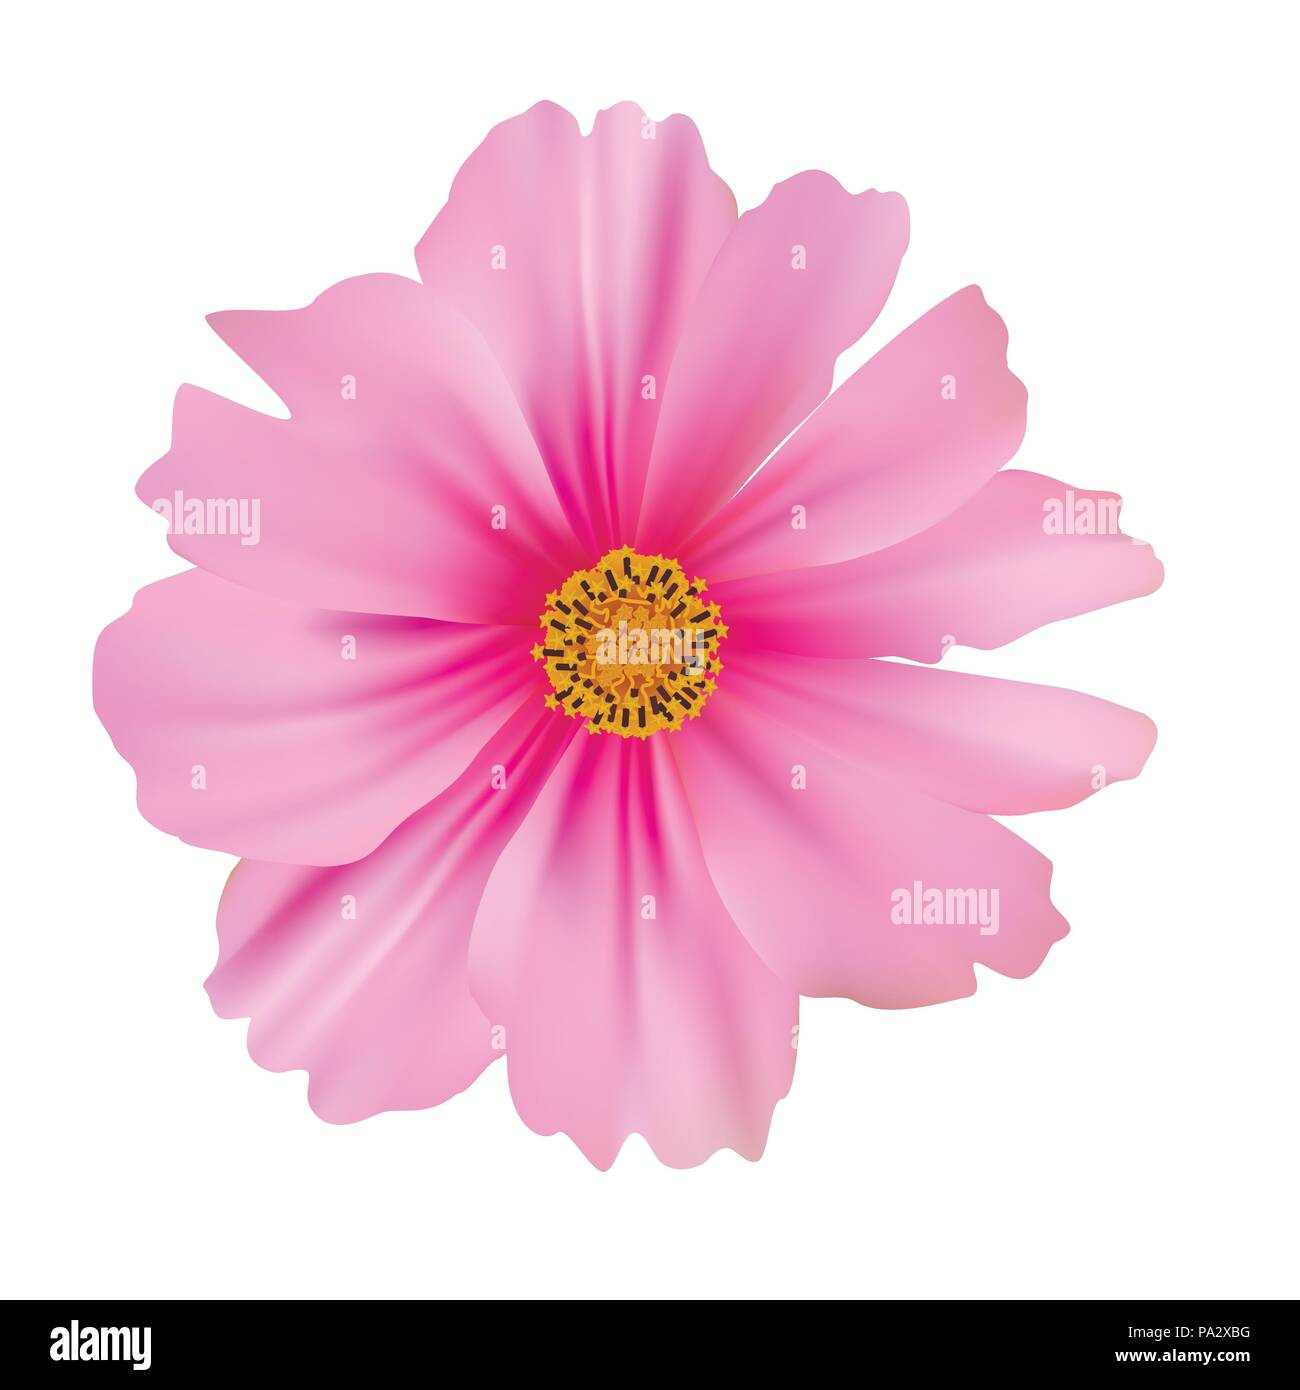 Cosmos flower isolated on white background - Stock Vector